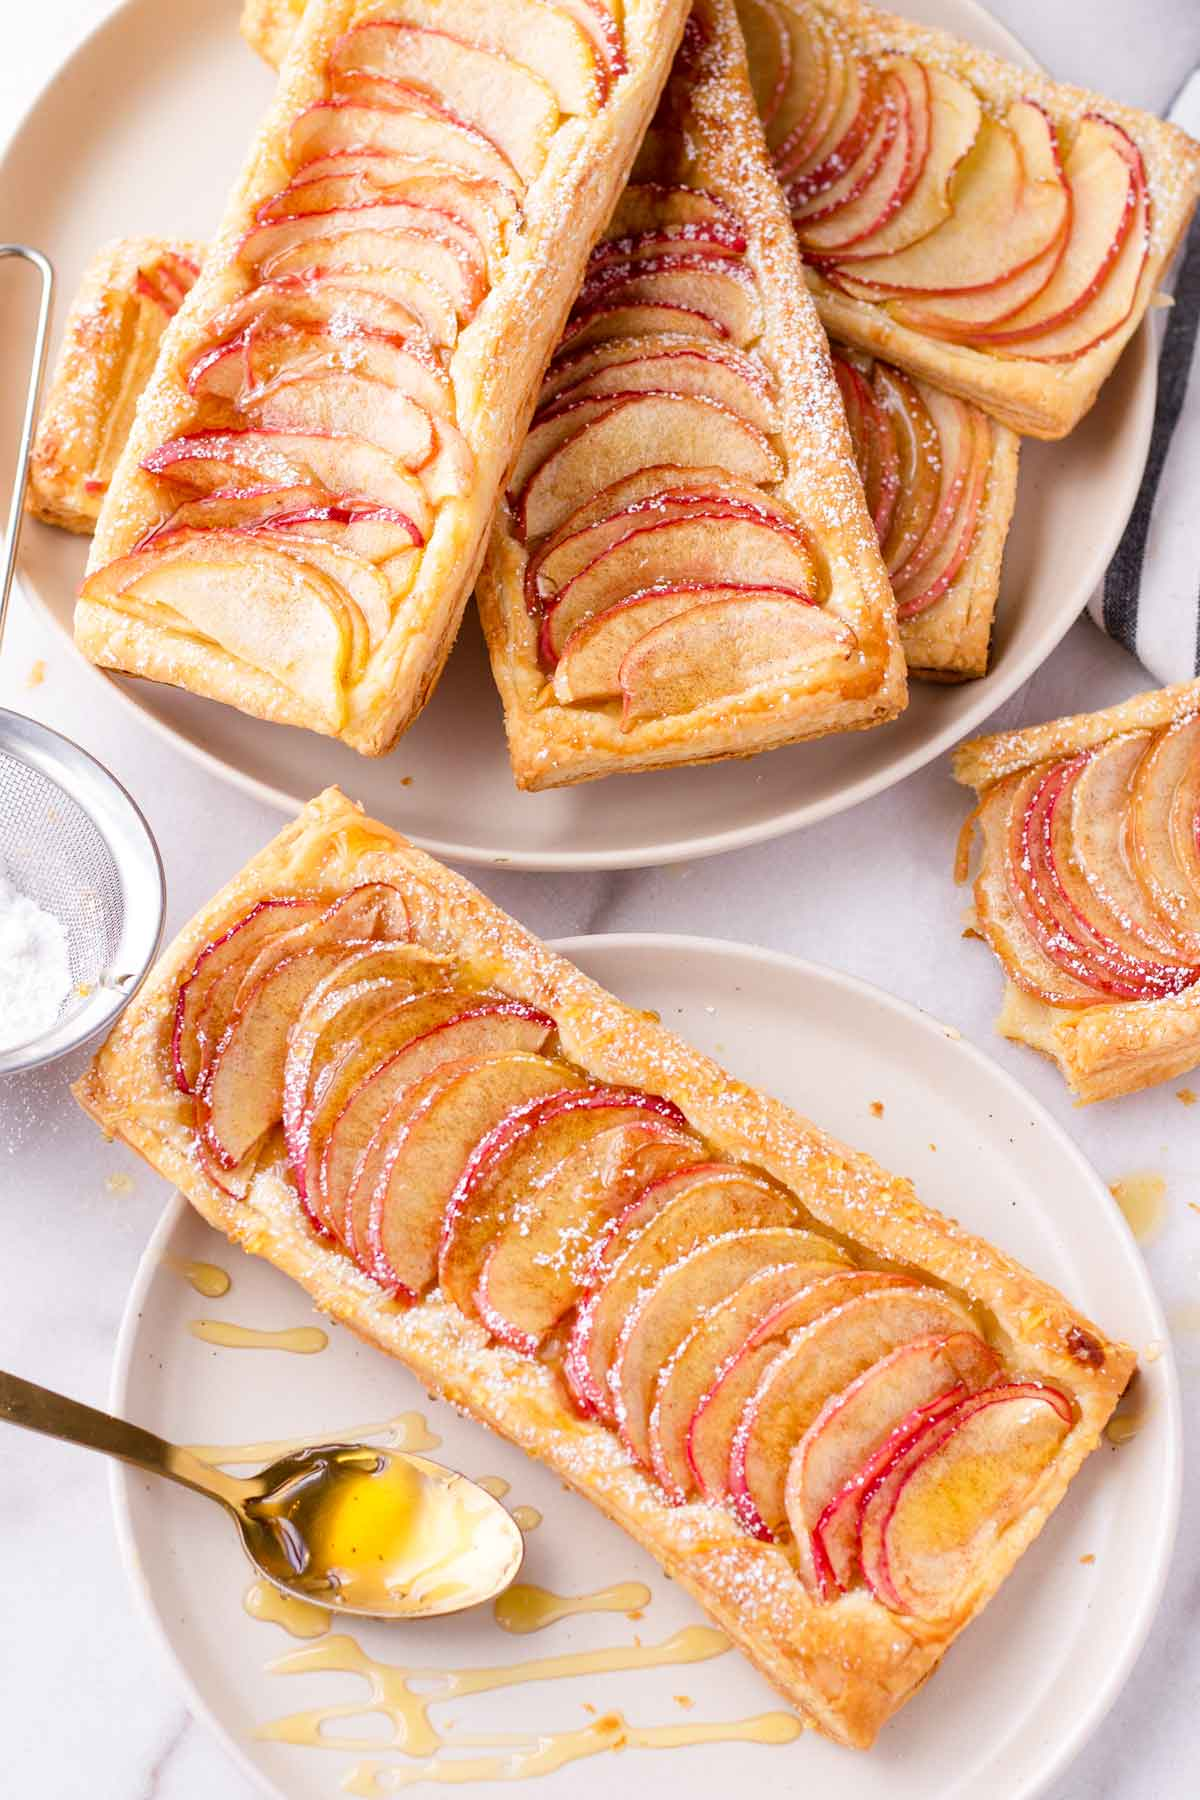 a baked puff pastry apple tart on plate with honey drizzles and a stack of more tarts